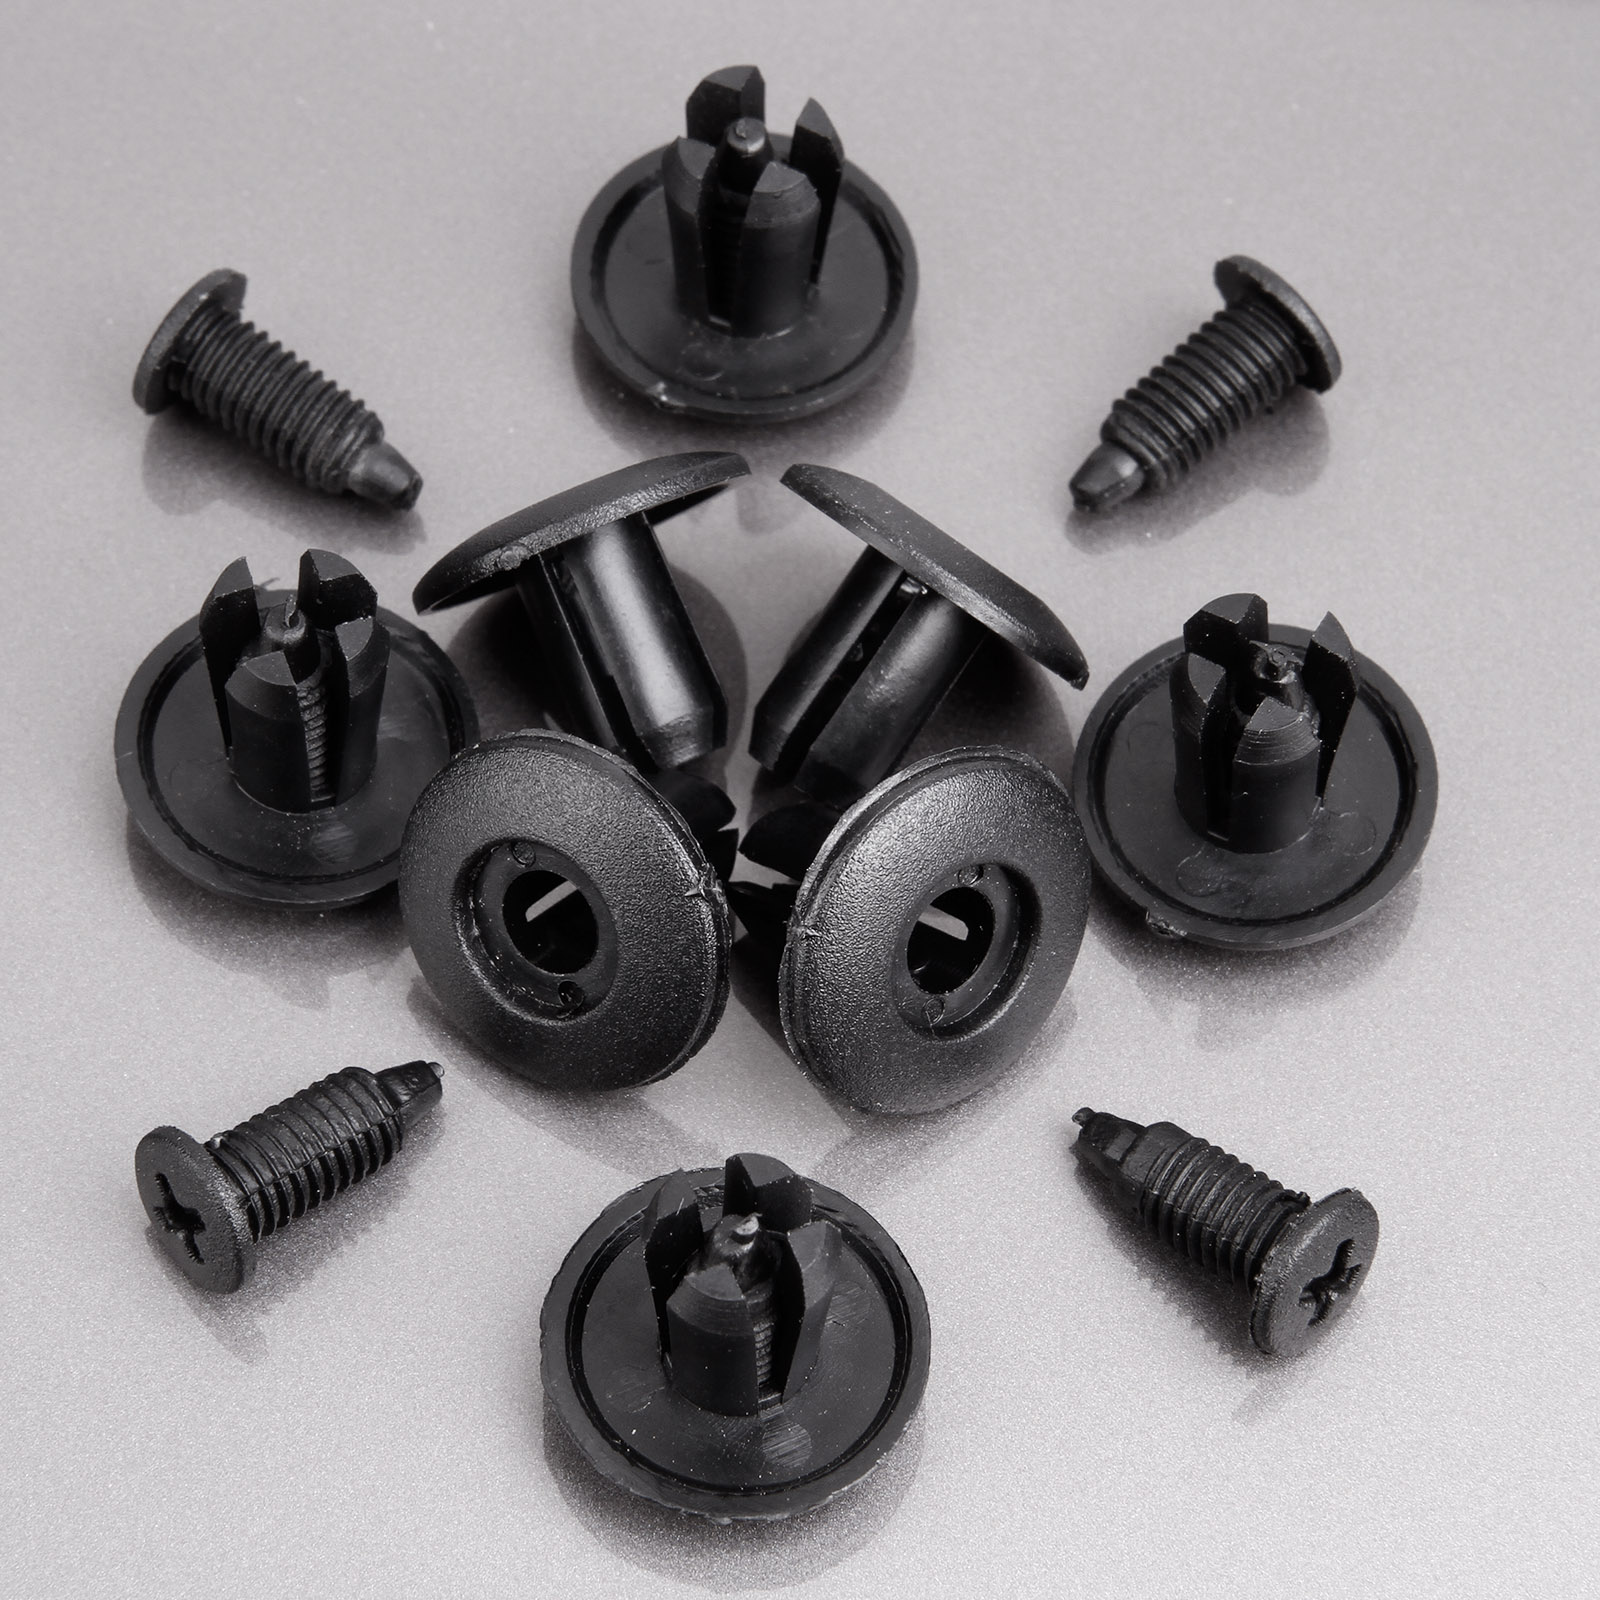 100x auto car interior panel trim clips black plastic rivets for 8mm hole ebay. Black Bedroom Furniture Sets. Home Design Ideas